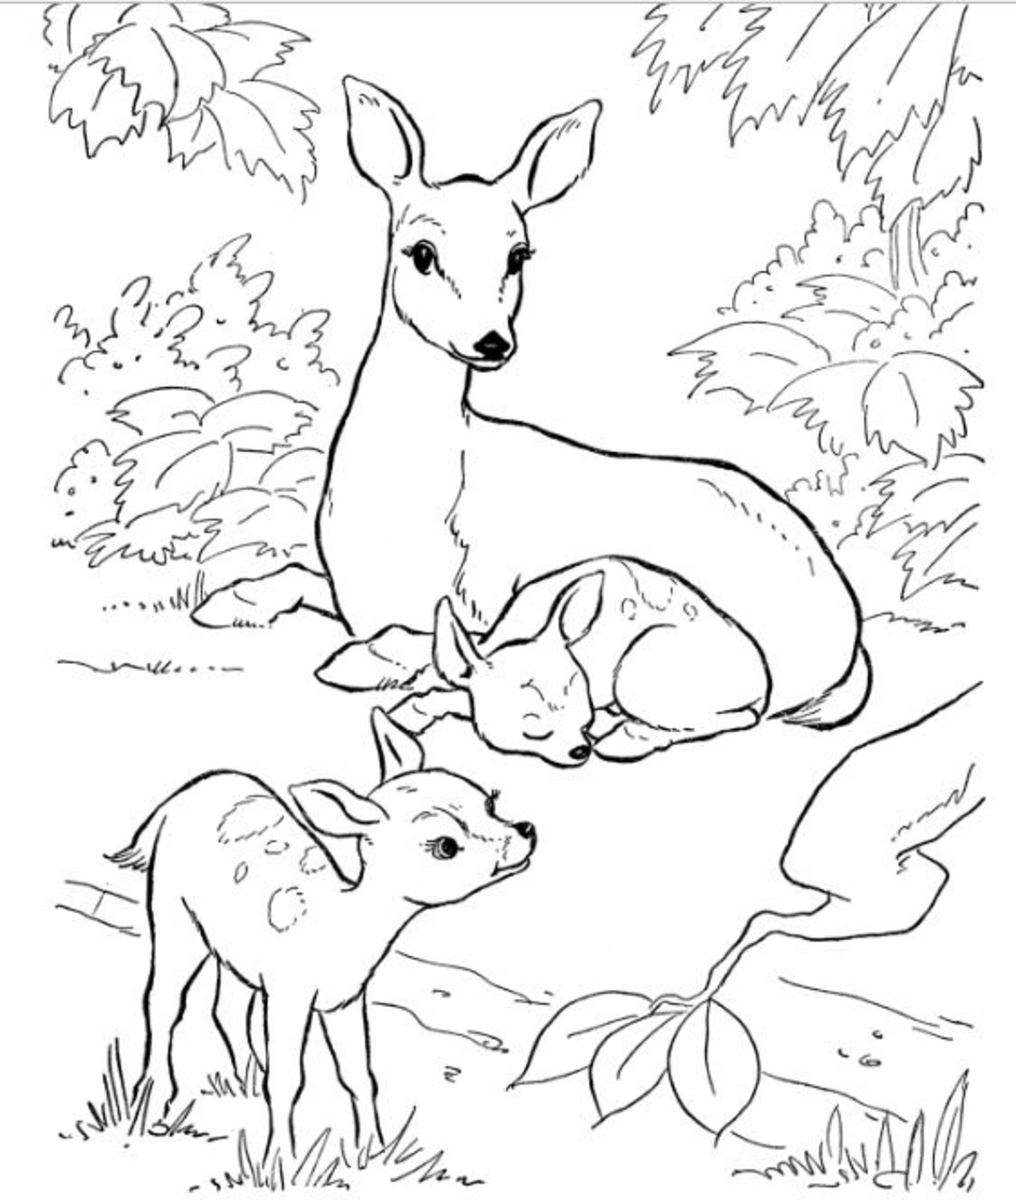 coloring pages of nature and animals 56 best nature wild animals adult colouring pages and of nature coloring animals pages